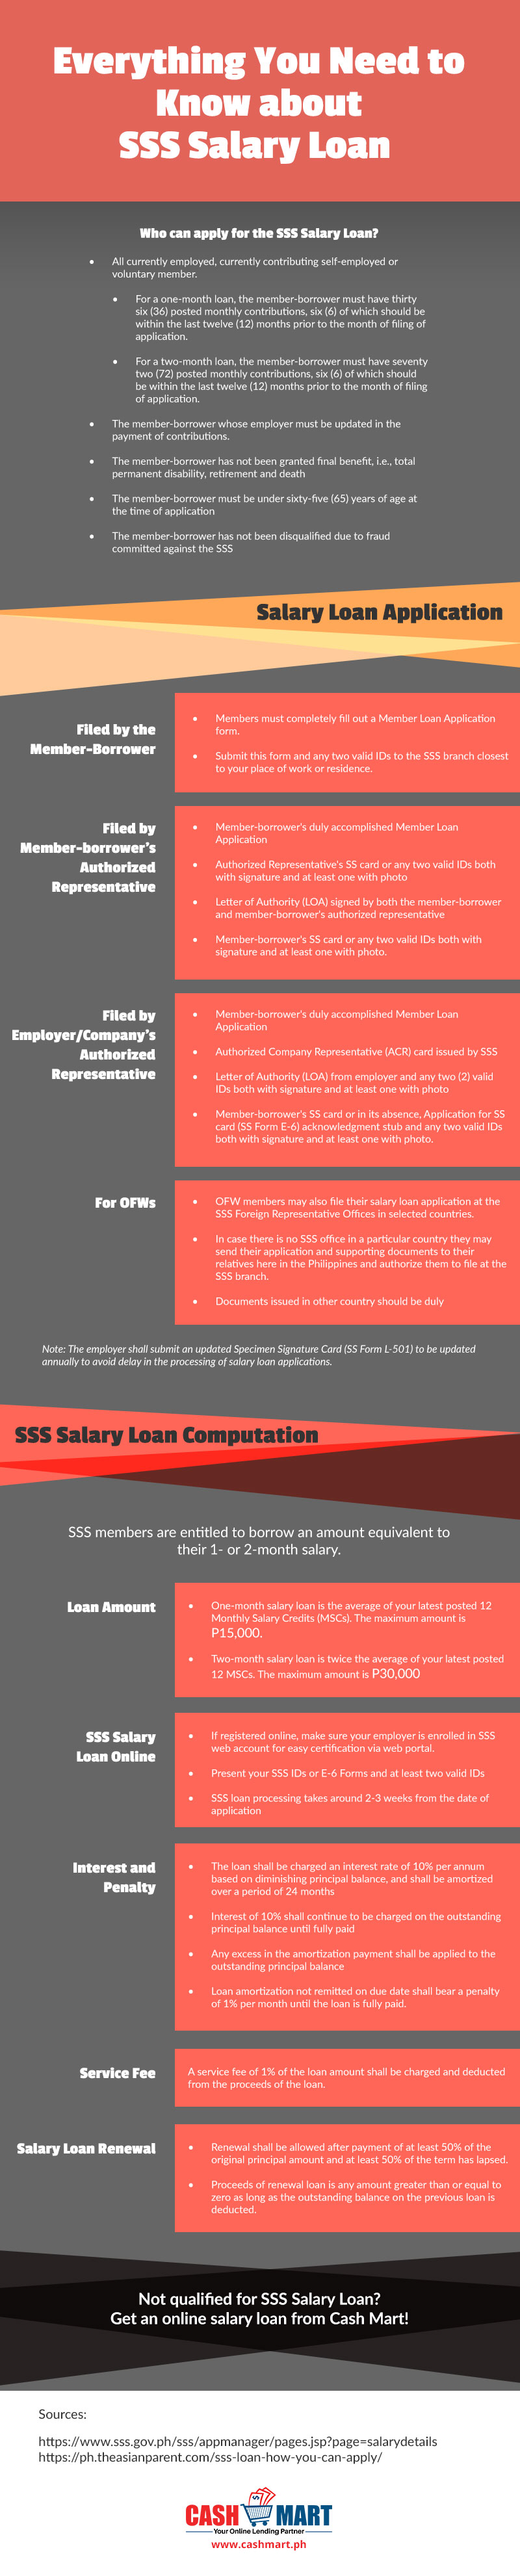 everything-you-need-to-know-about-sss-salary-loan